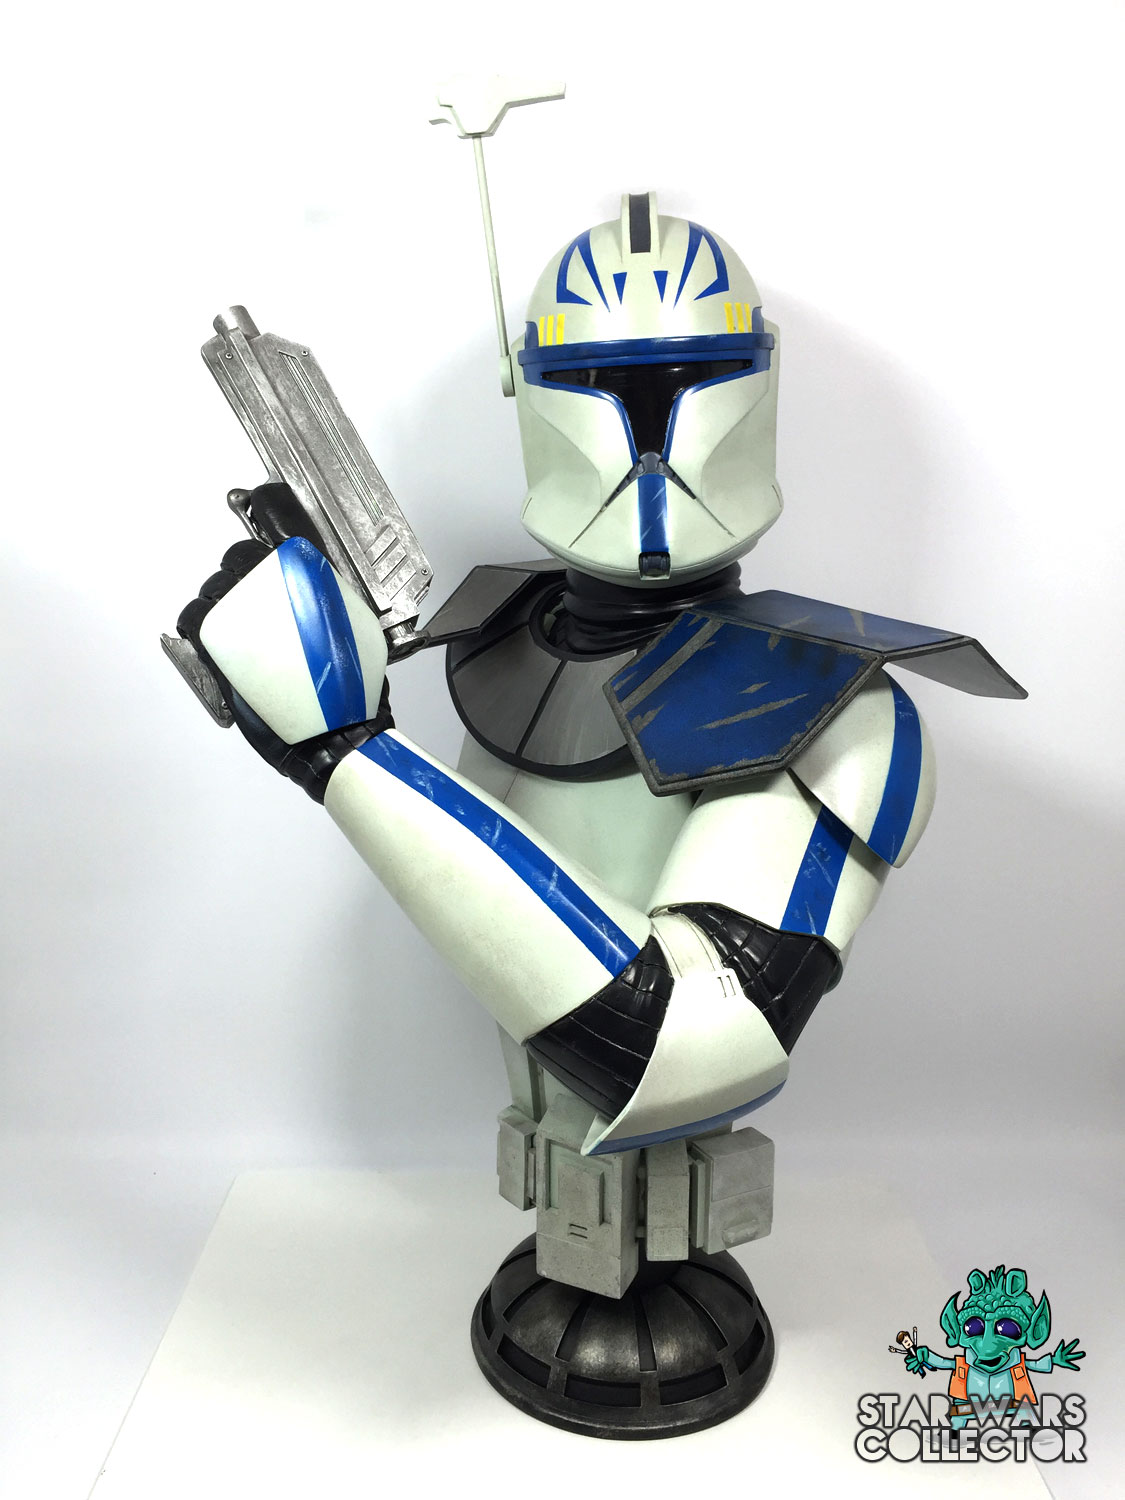 Sideshow Captain Rex Legendary Scale Büste